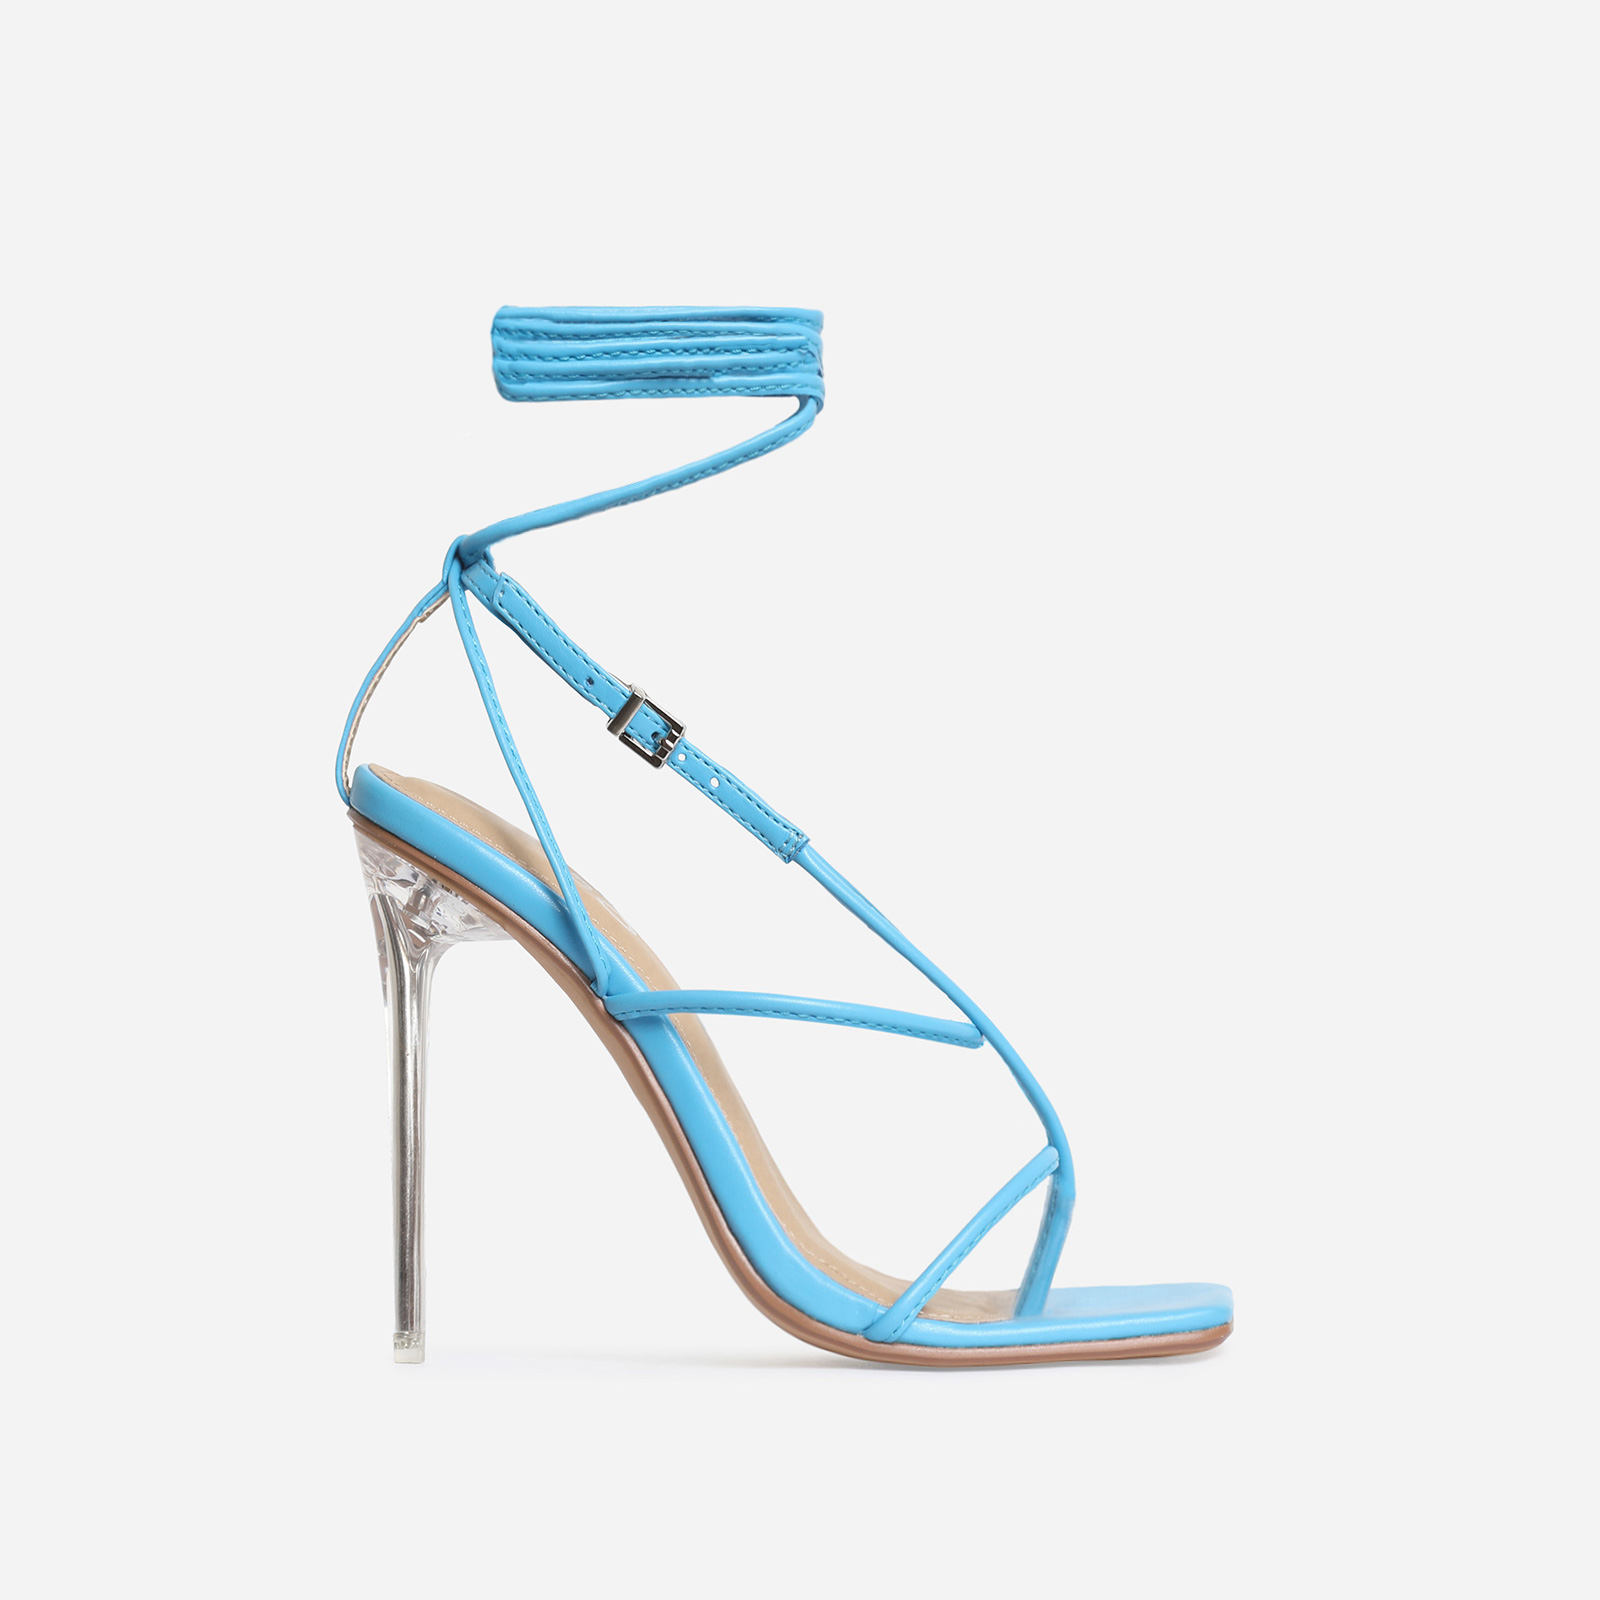 True Square Toe Lace Up Clear Perspex Heel In Blue Faux Leather